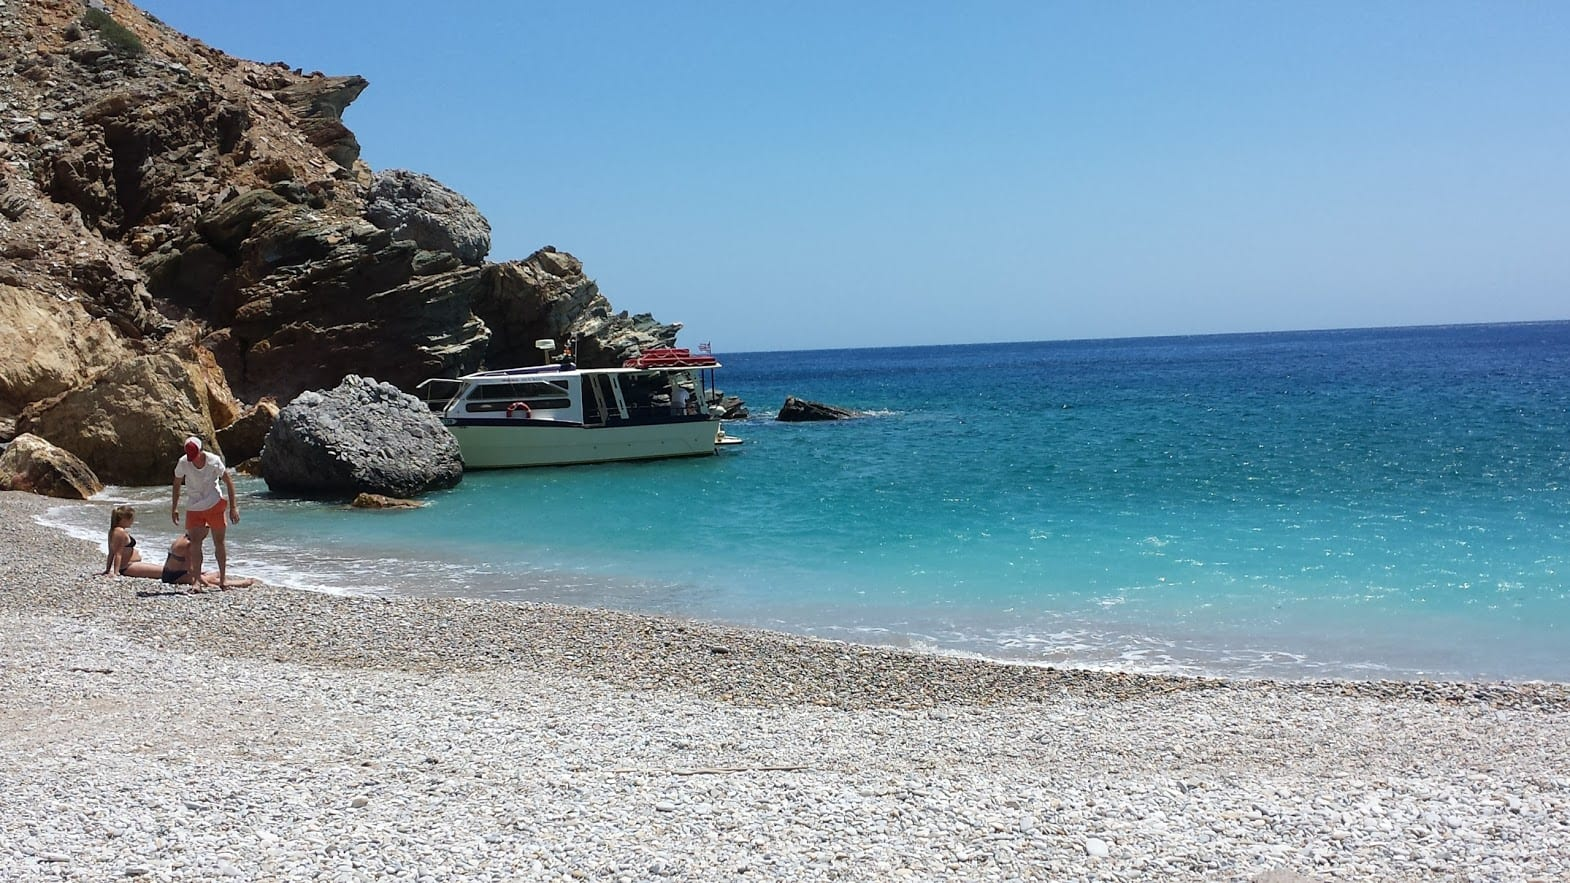 A beautiful beach in Iraklia, Greece